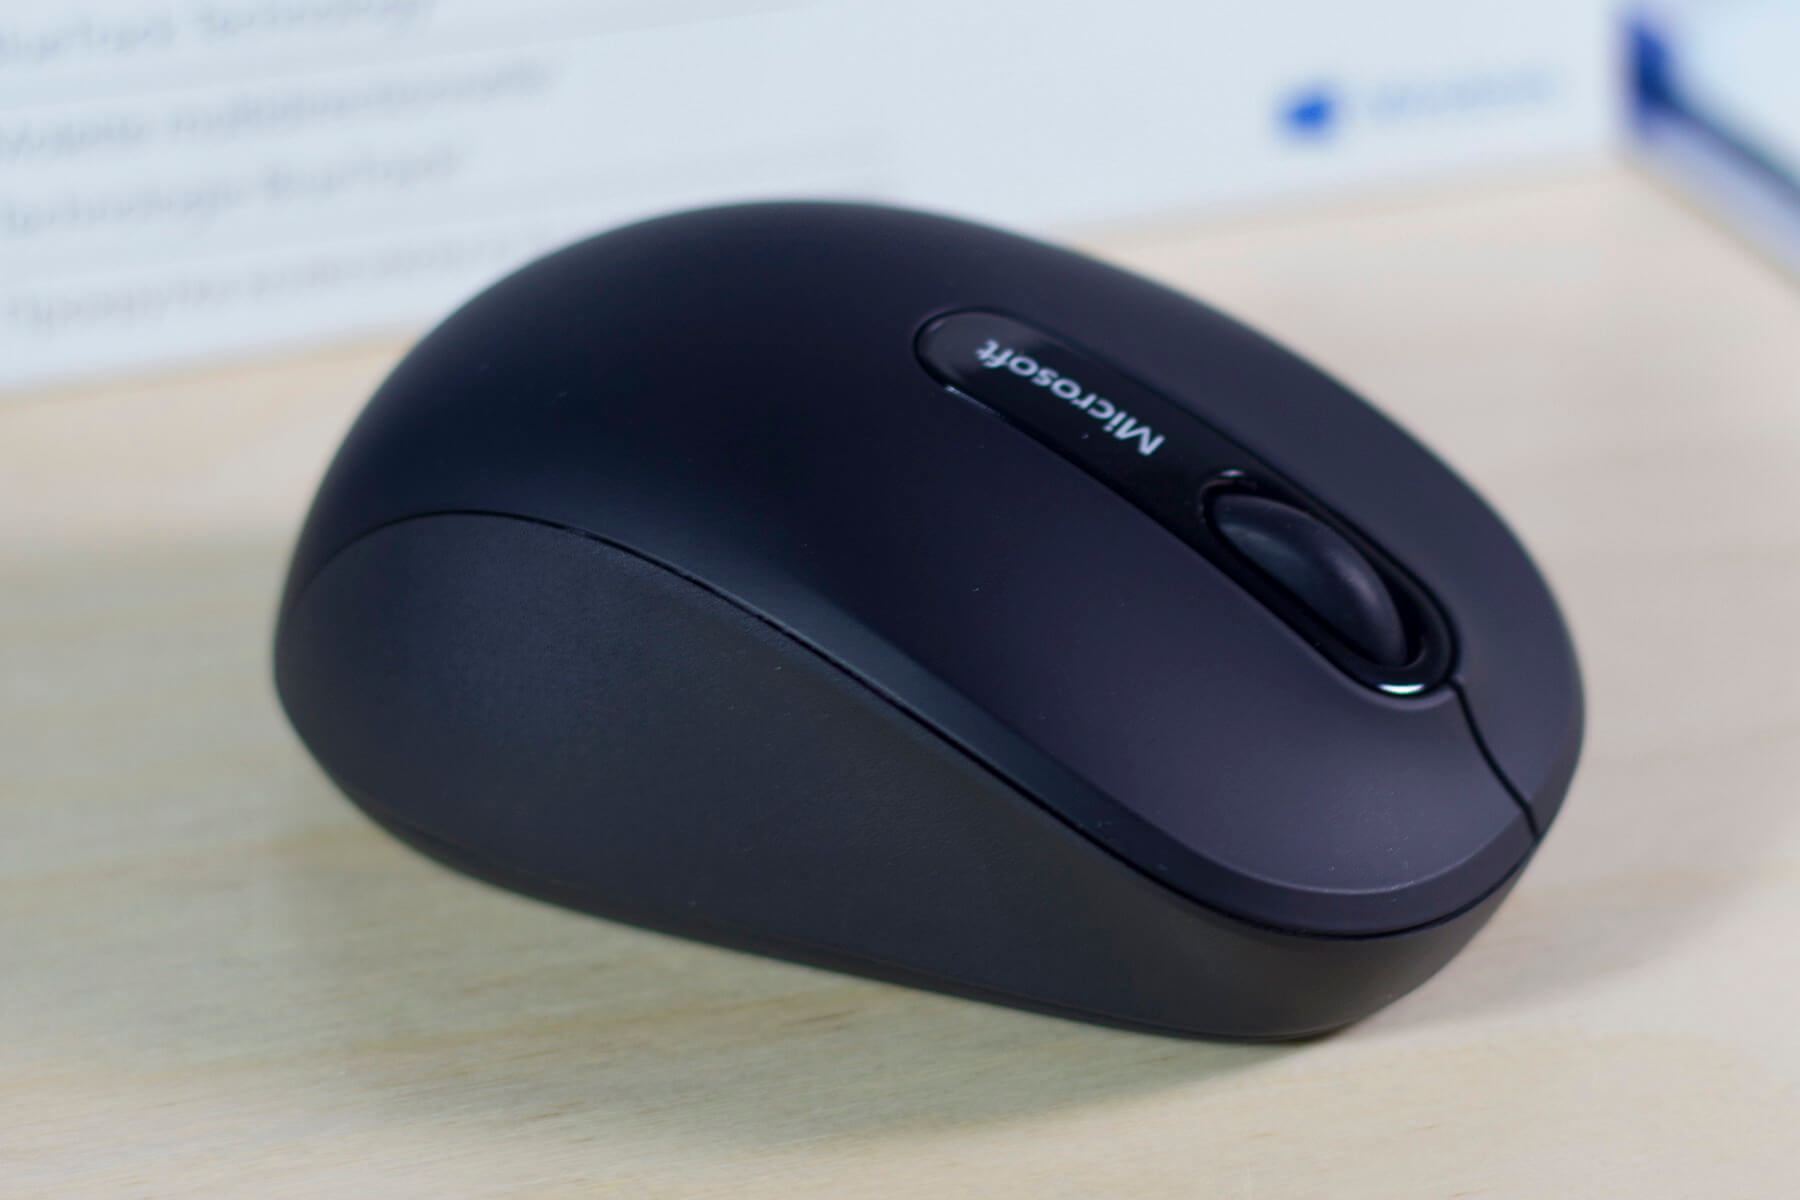 Обзор Bluetooth мыши Microsoft Mobile Mouse 3600 в связке с MacBook